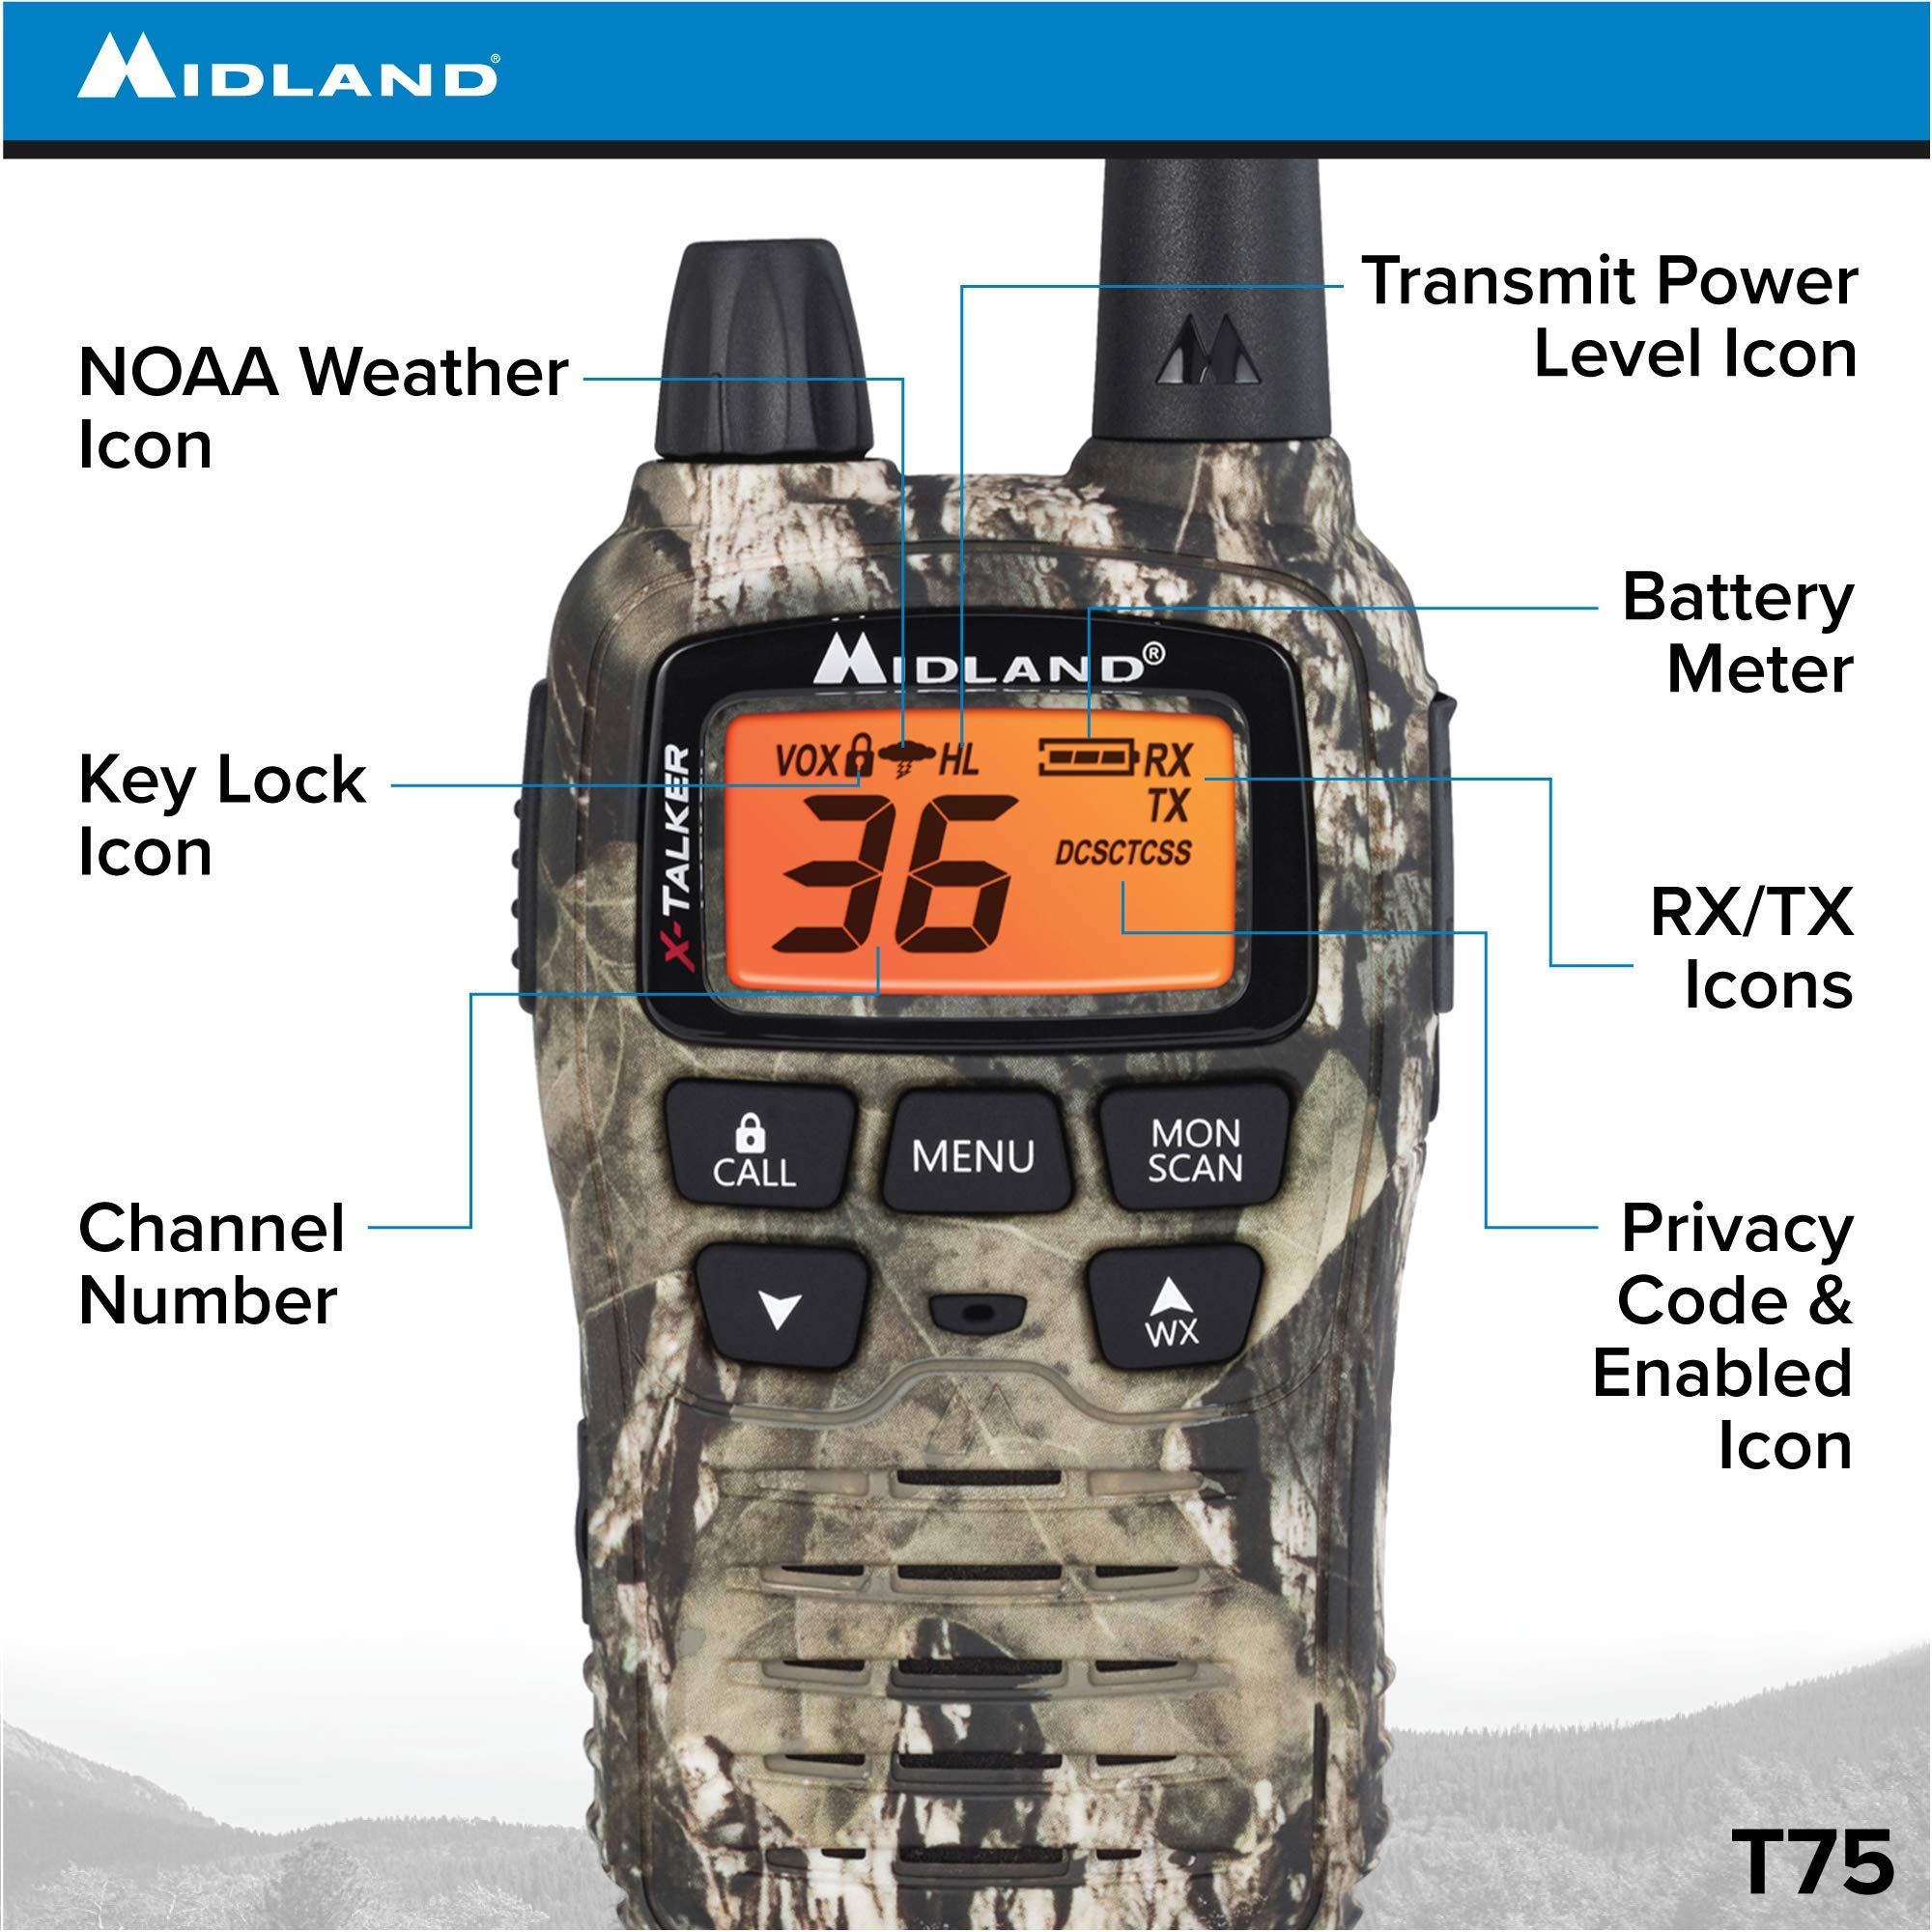 Midland - X-TALKER T75VP3, 36 Channel FRS Two-Way Radio - Up to 38 Mile Range Walkie Talkie, 121 Privacy Codes, & NOAA Weather Scan + Alert (Pair Pack) (Mossy Oak Camo) by Midland (Image #3)